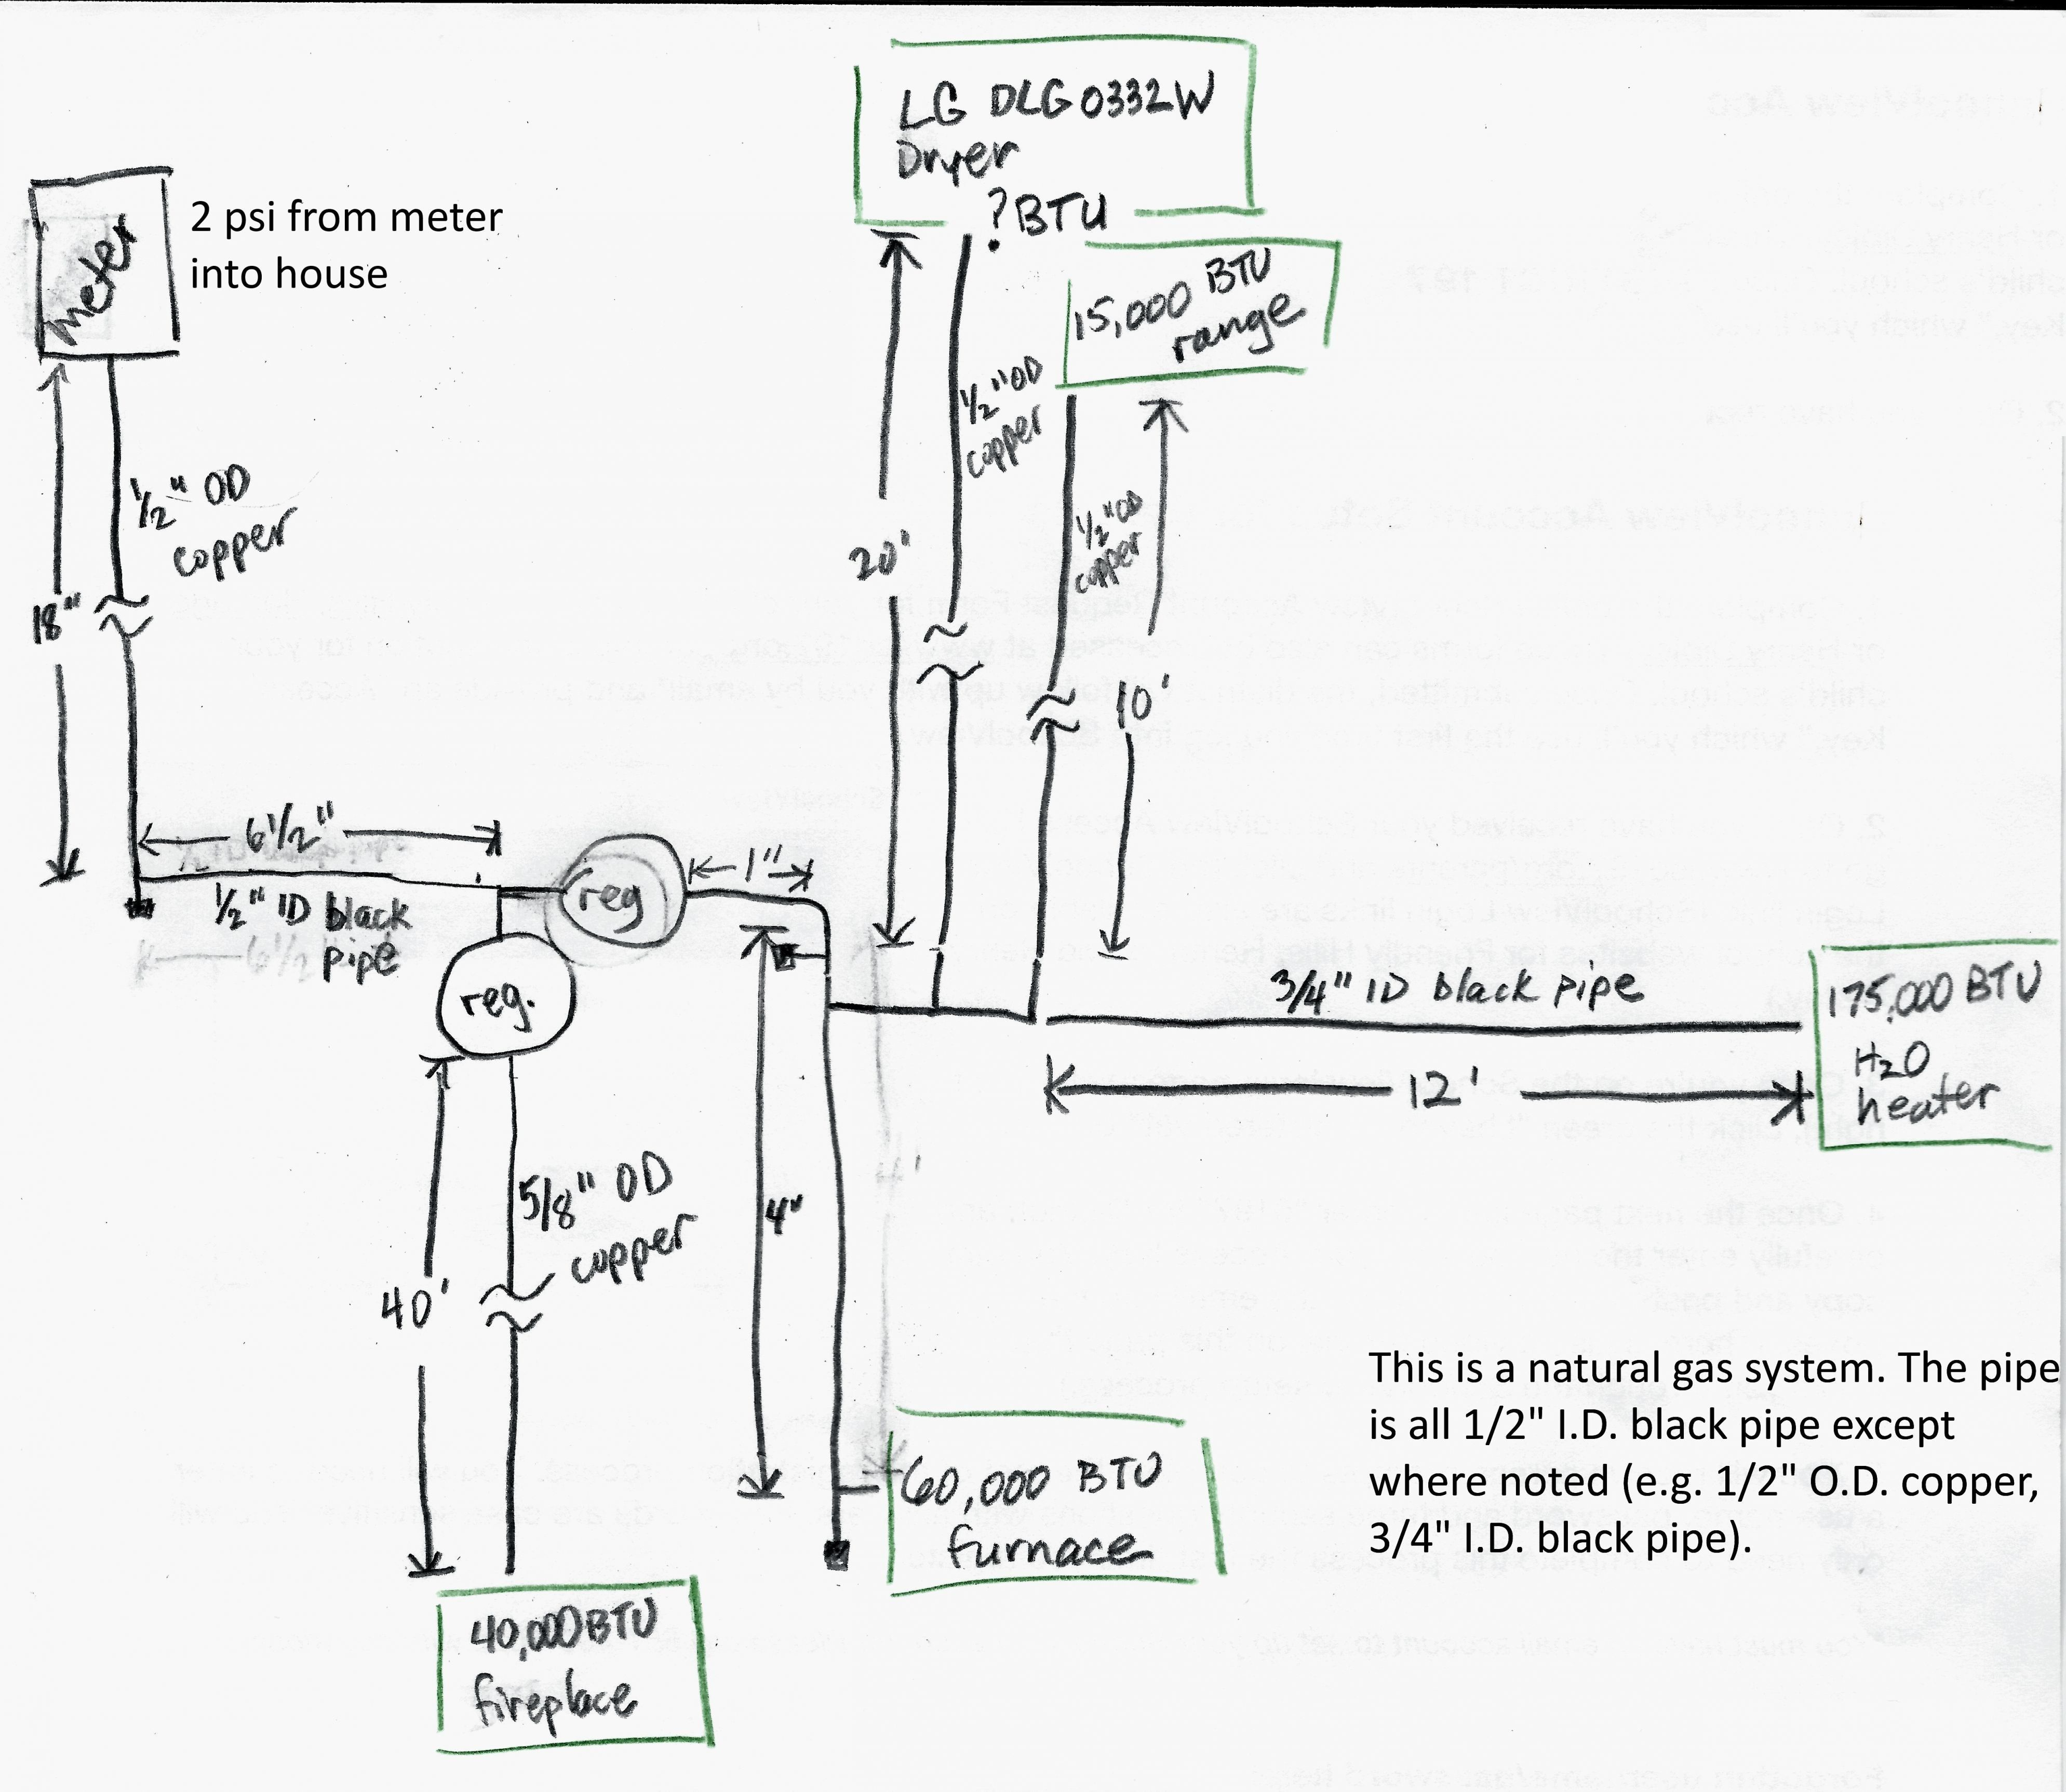 New Wiring Diagram for Trailers Australia New Wiring